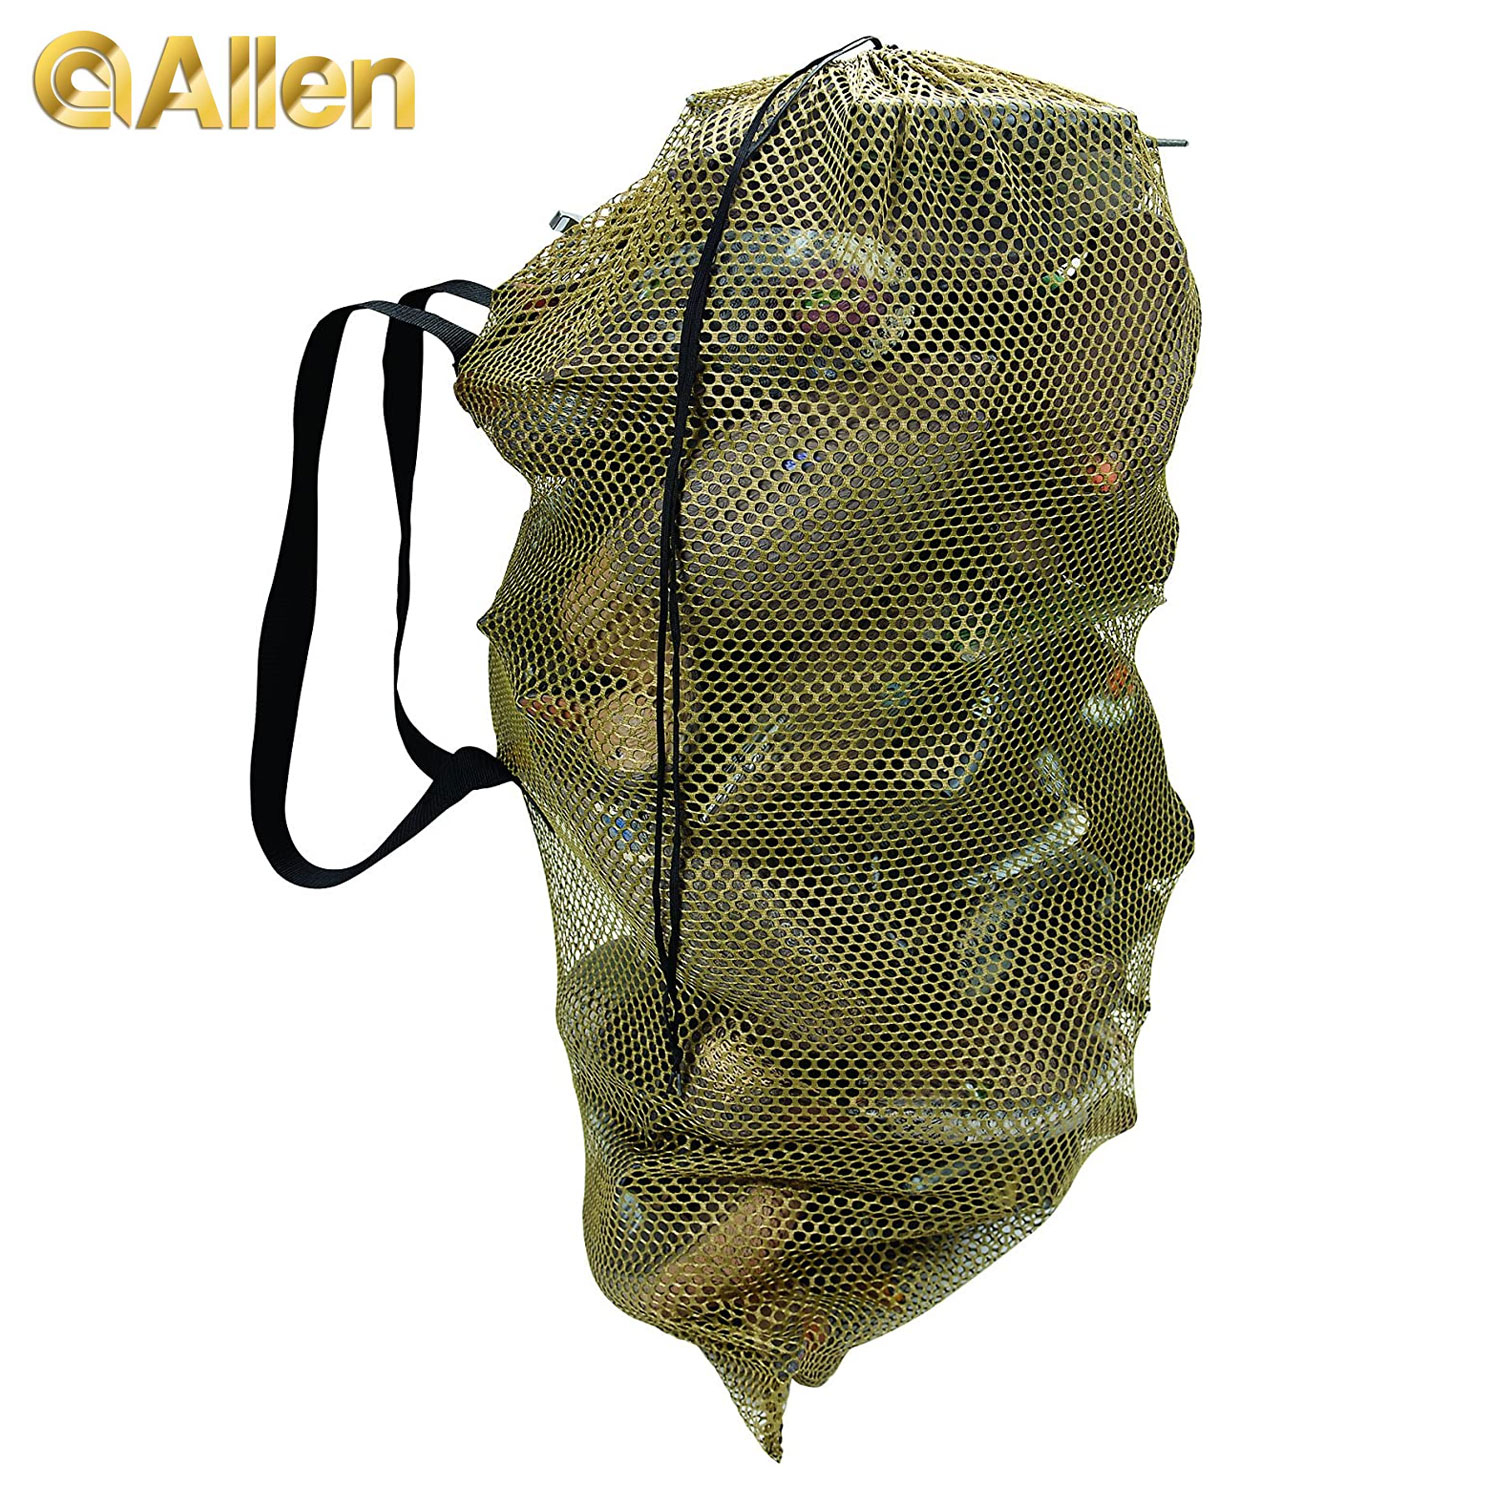 Allen Co. Magnum 47″x50″ Mesh Decoy Bag- Tan